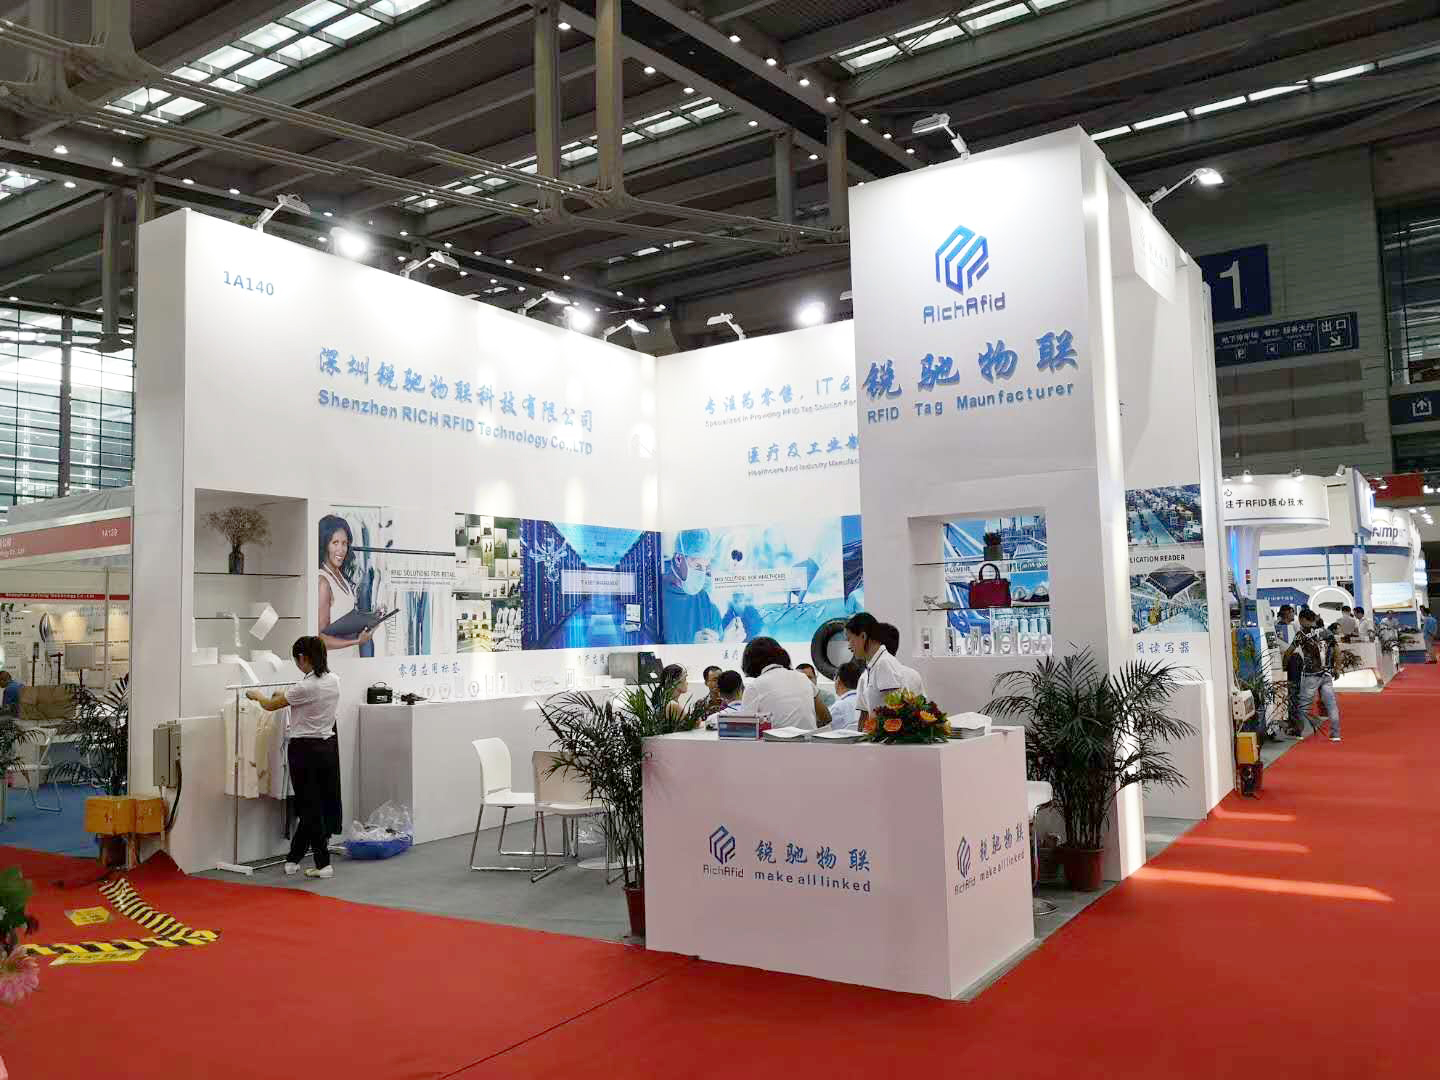 RICH RFID's Participation In Shenzhen IOTE 2018